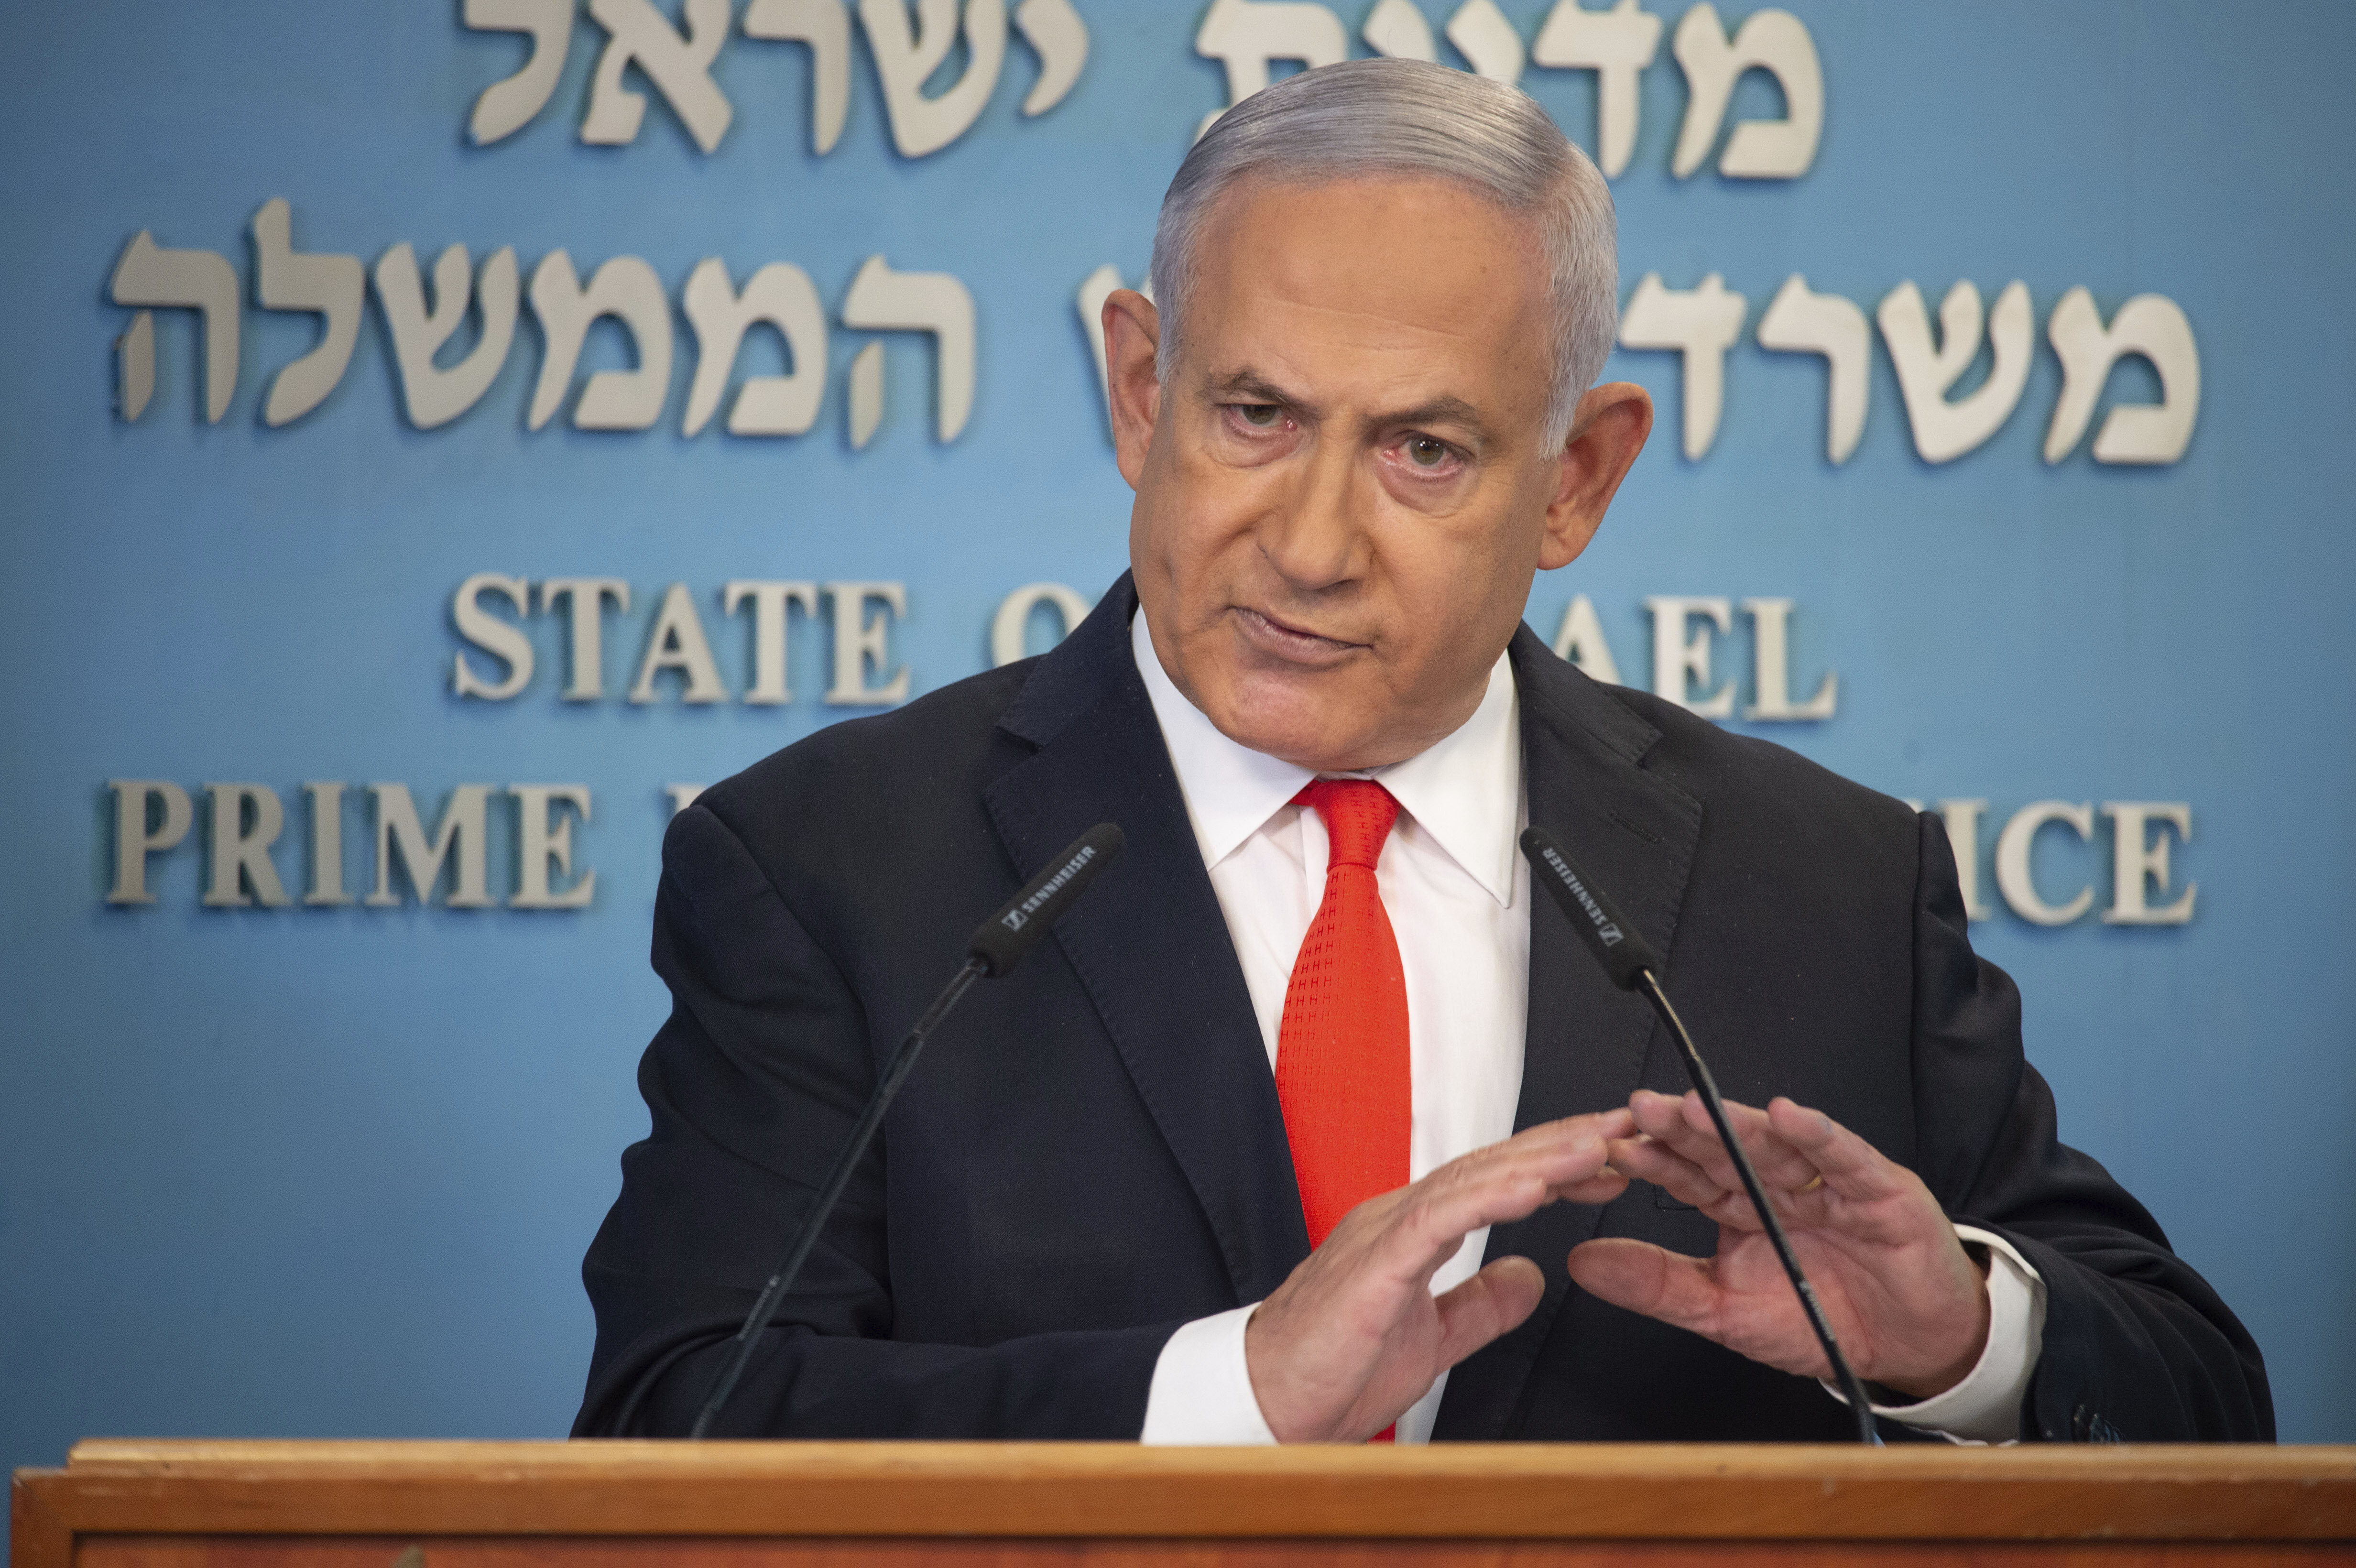 Israeli Prime Minister Benjamin Netanyahu speaks during a briefing on coronavirus development in Israel at his office in Jerusalem, Sunday, Sept. 13 2020. Netanyahu announced a new countrywide lockdown will be imposed amid a stubborn surge in coronavirus cases, with schools and parts of the economy expected to shut down in a bid to bring down infection rates. (Alex Kolomiensky/Yedioth Ahronoth/Pool via AP)